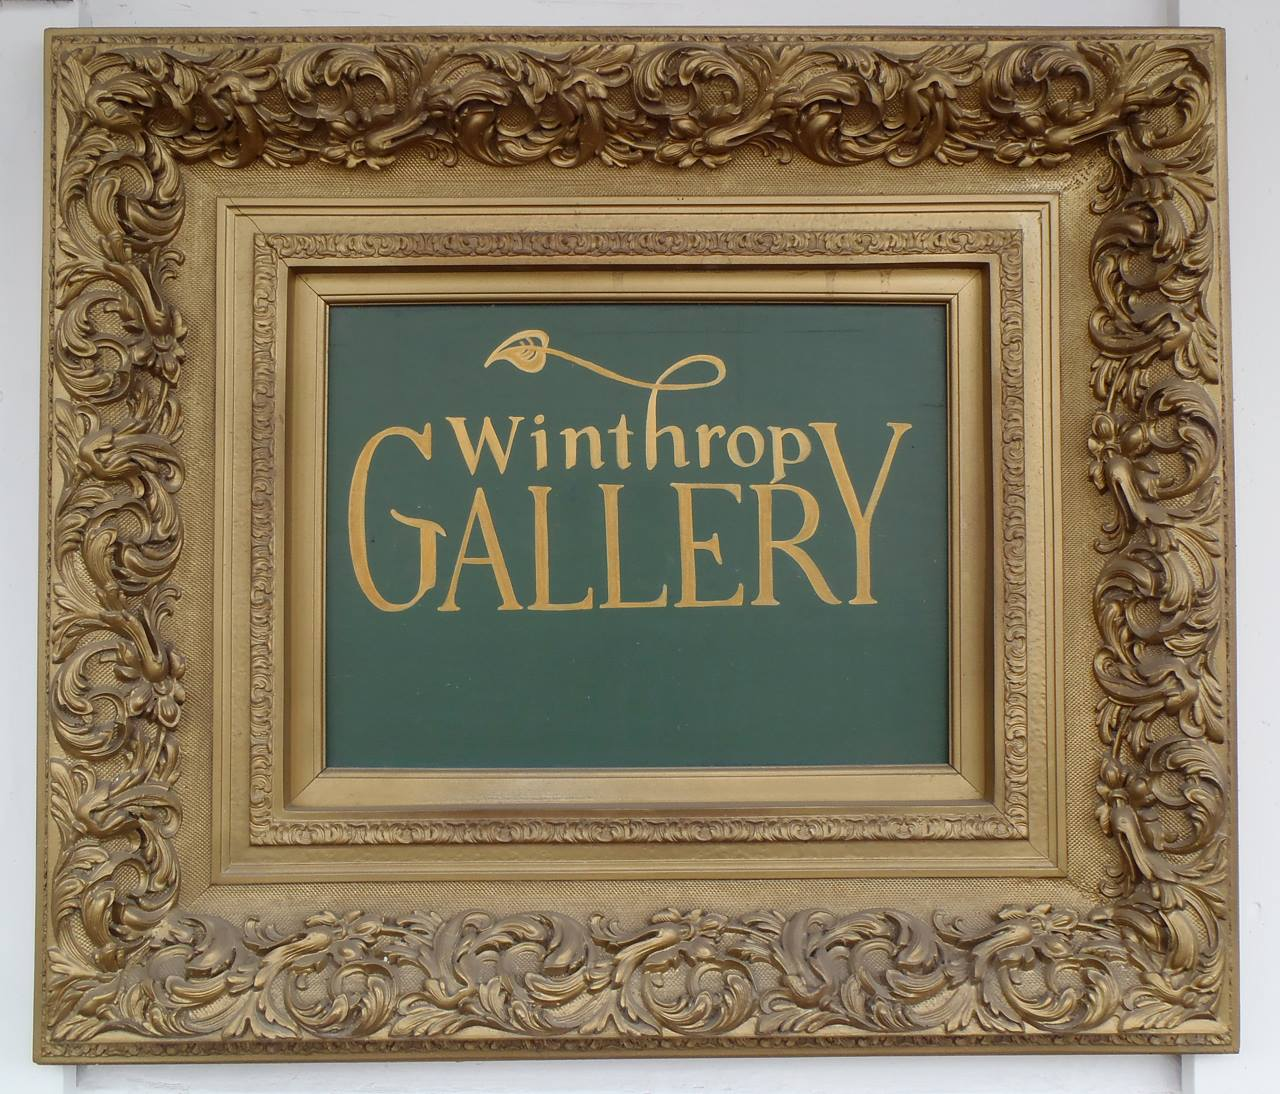 Winthrop Gallery logo